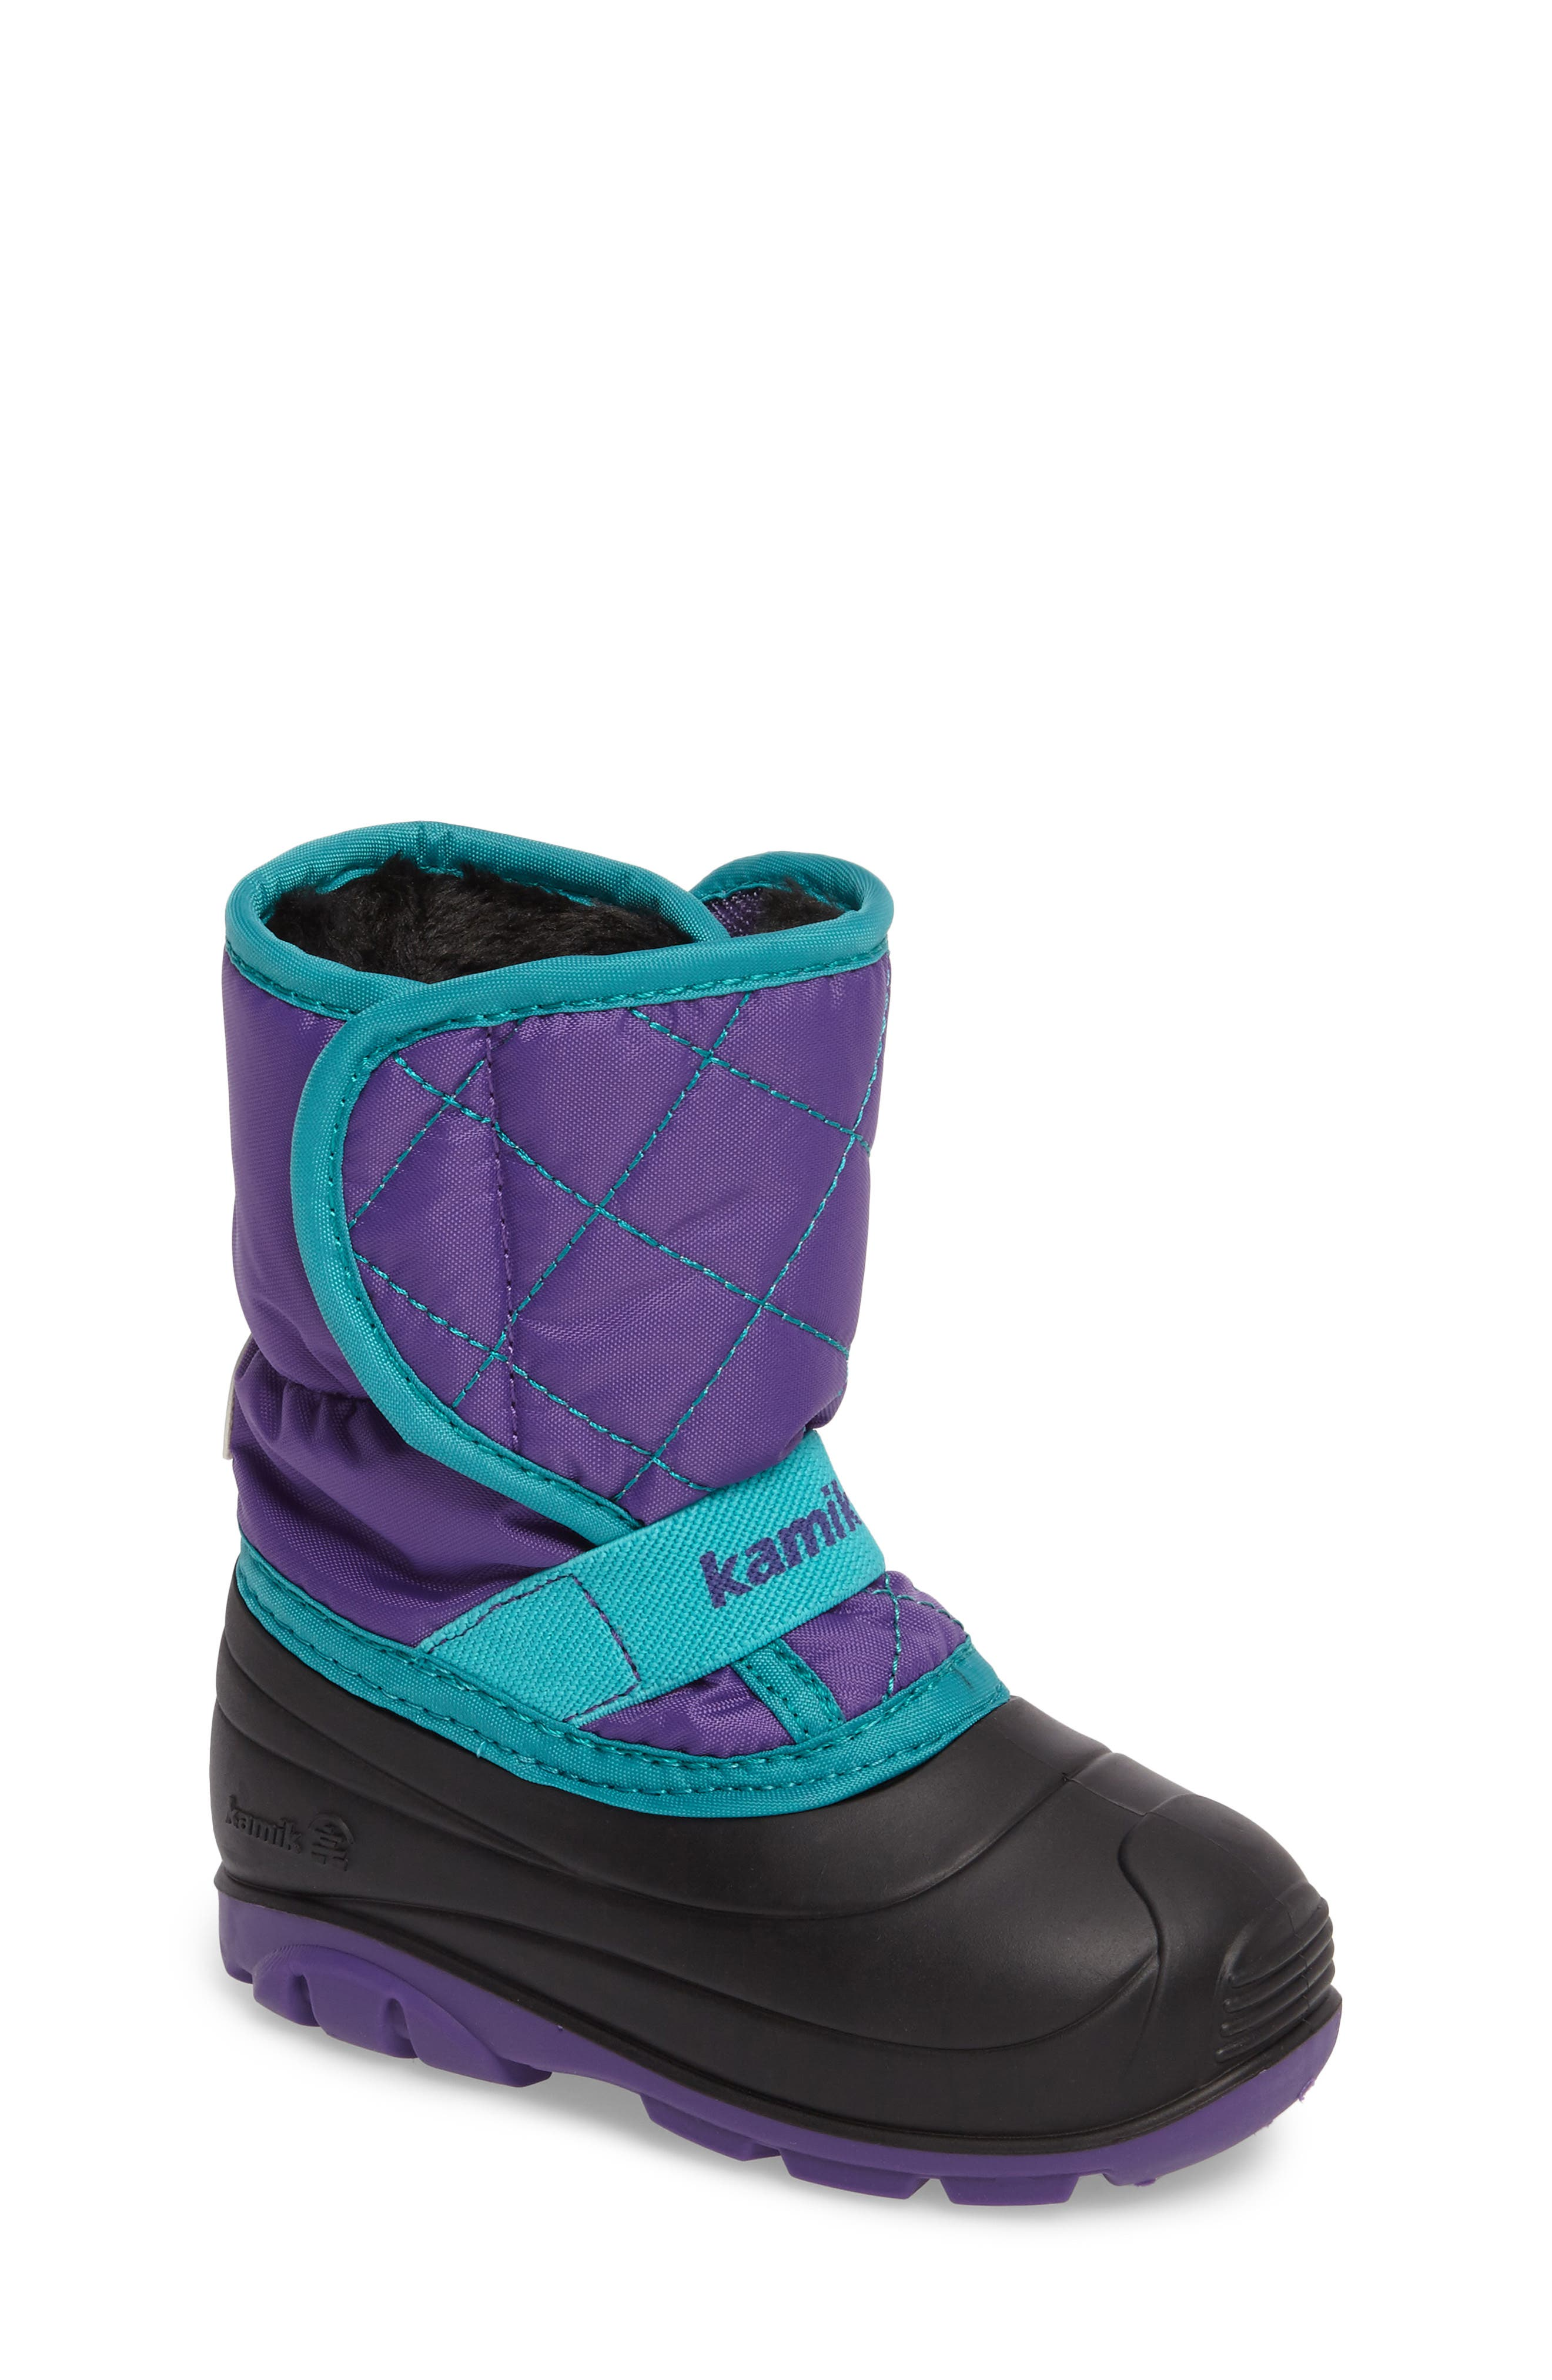 Main Image - Kamik Pika2 Faux Fur Insulated Waterproof Snow Boot (Walker & Toddler)